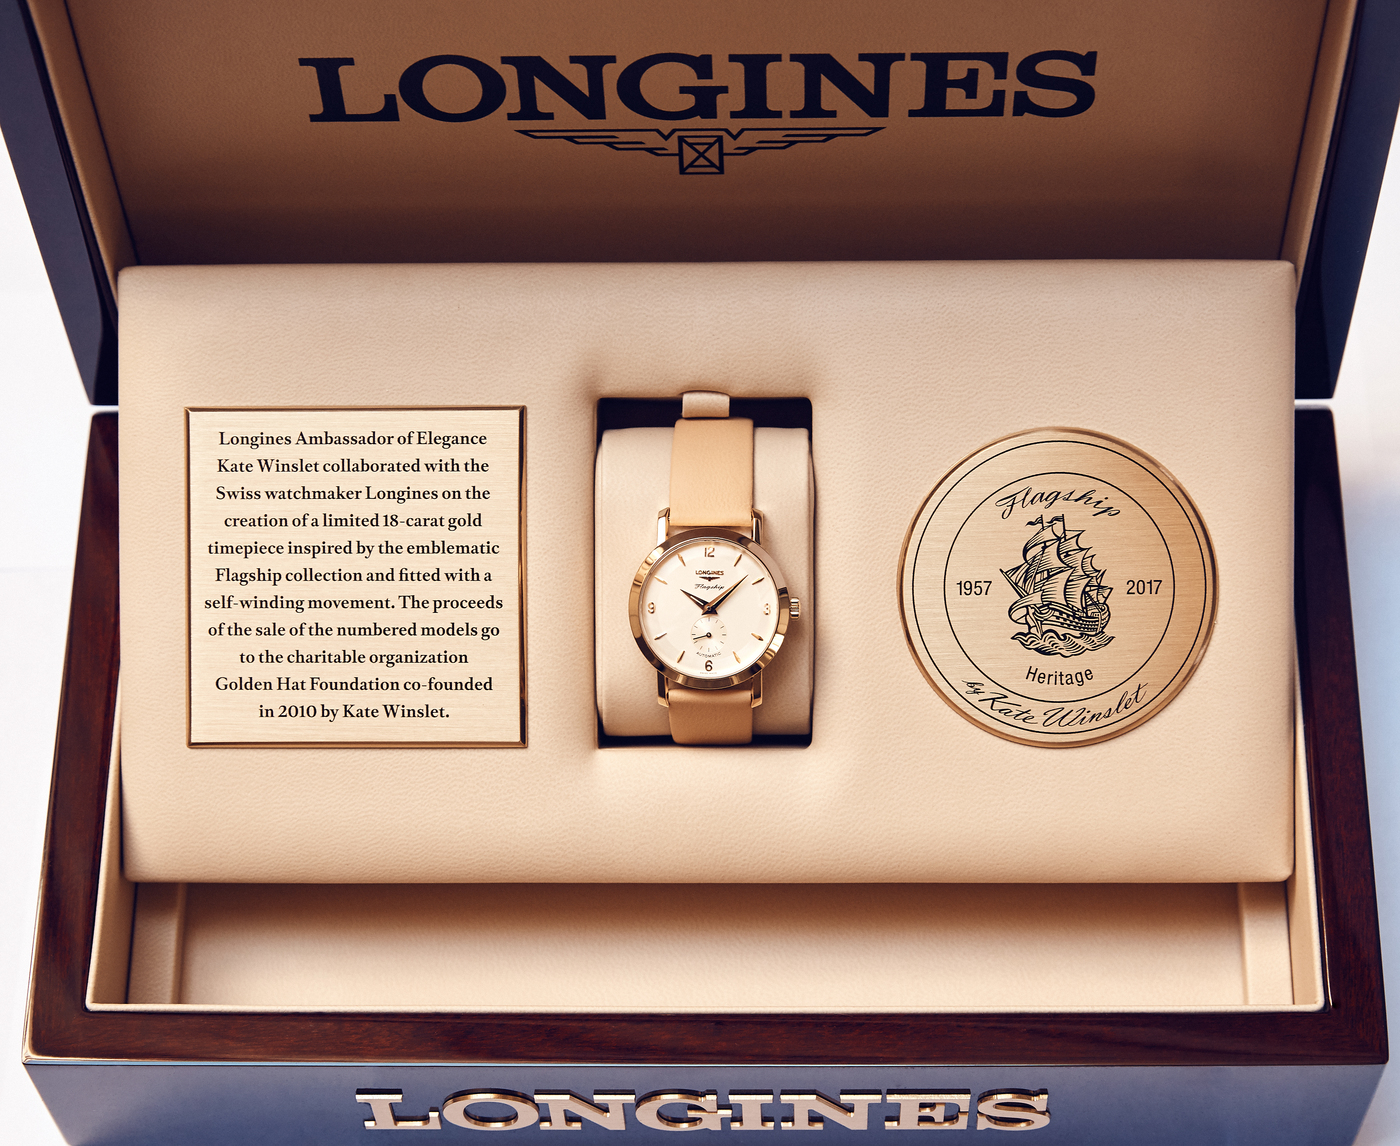 Longines Corporate Event: Kate Winslet launches the exclusive Flagship Heritage by Kate Winslet timepiece to be auctioned online 7